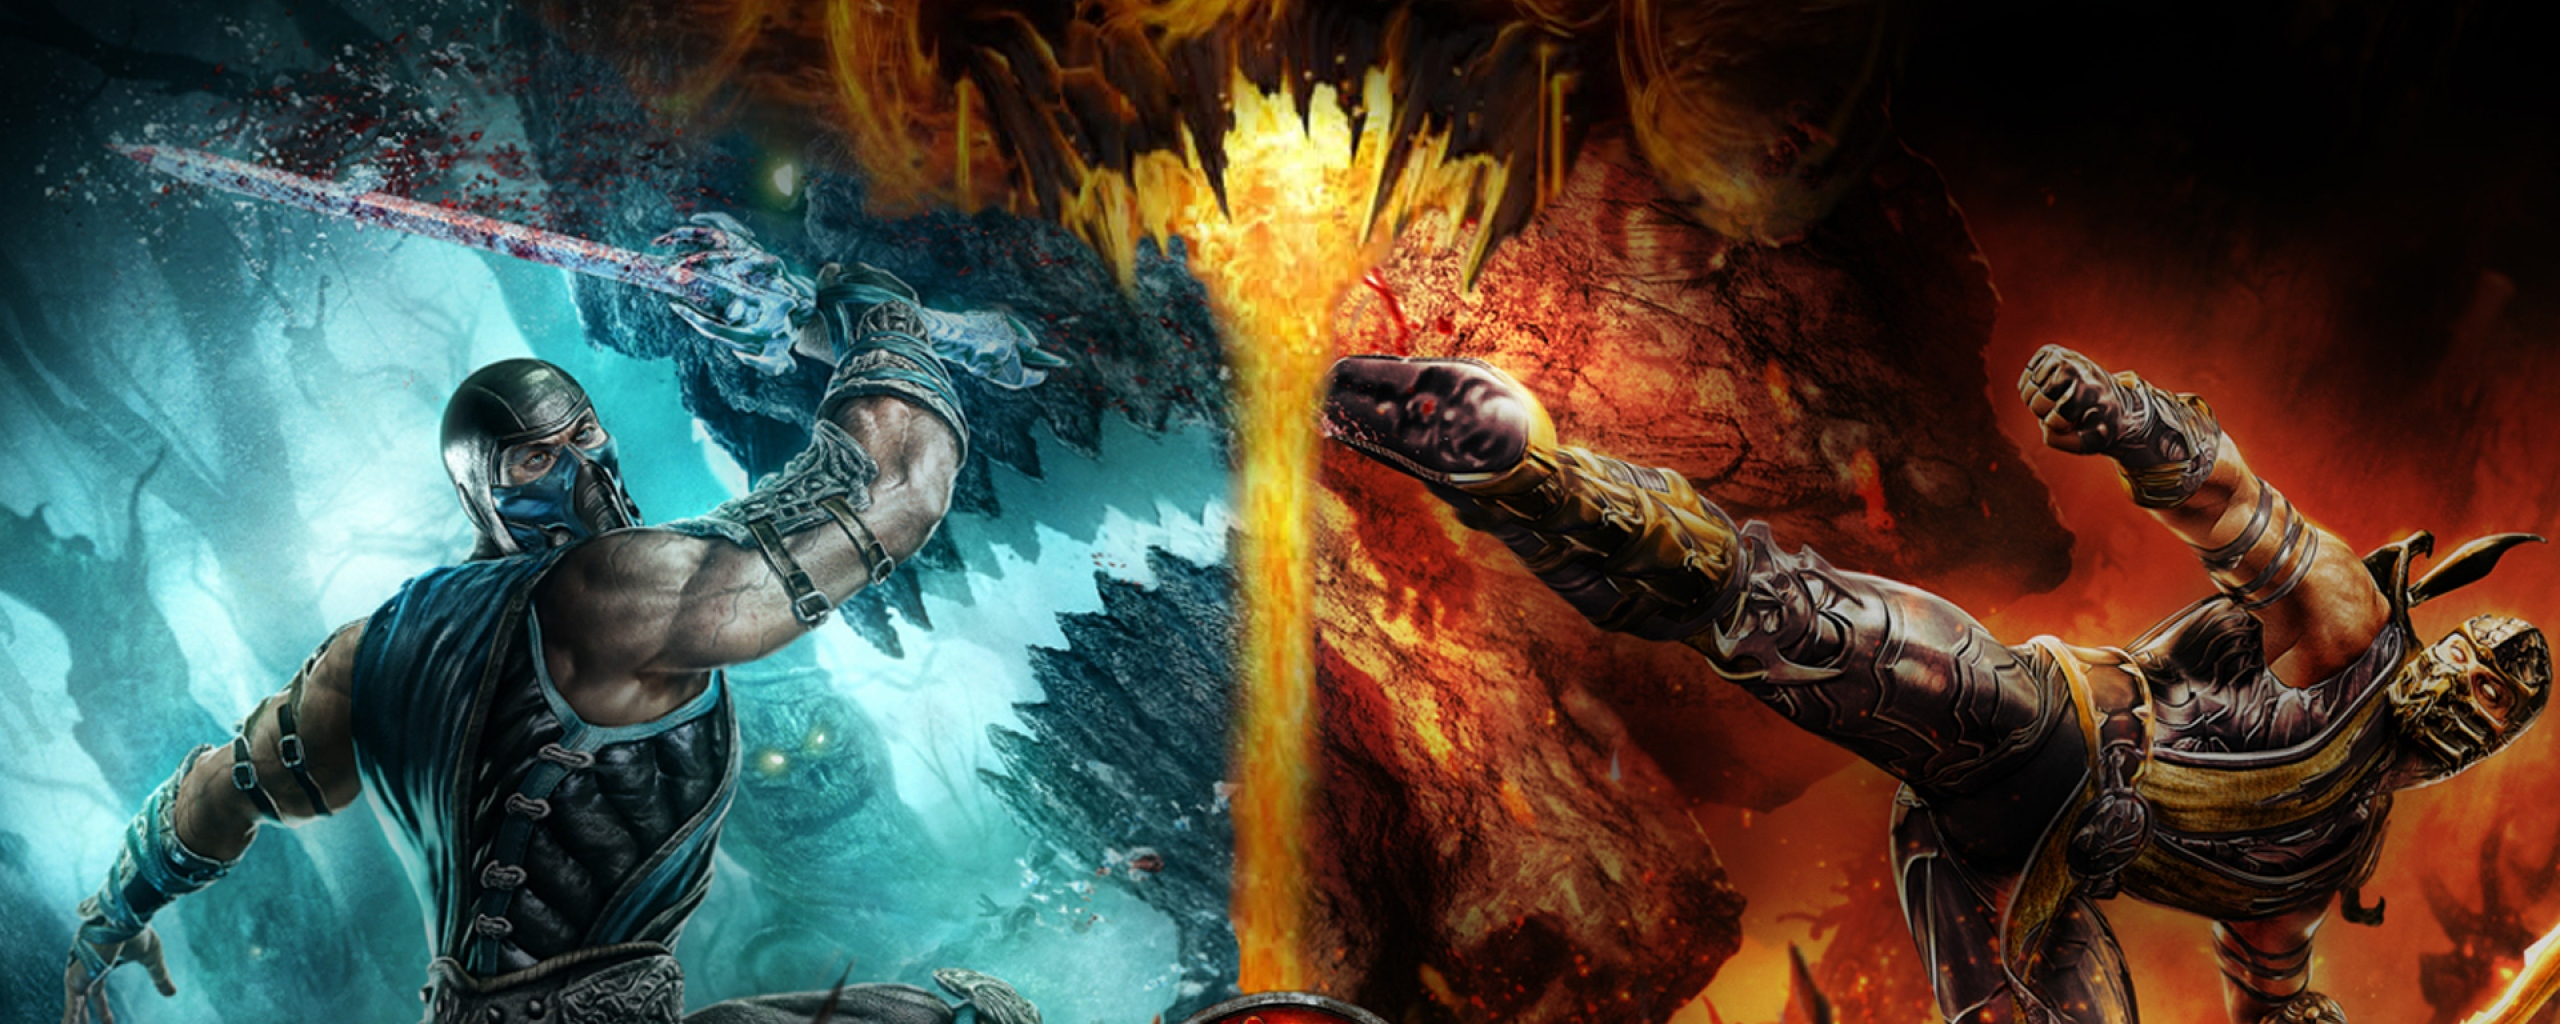 Cold Fire Dragon Game Wallpaper Background Dual Monitor Resolution 2560x1024